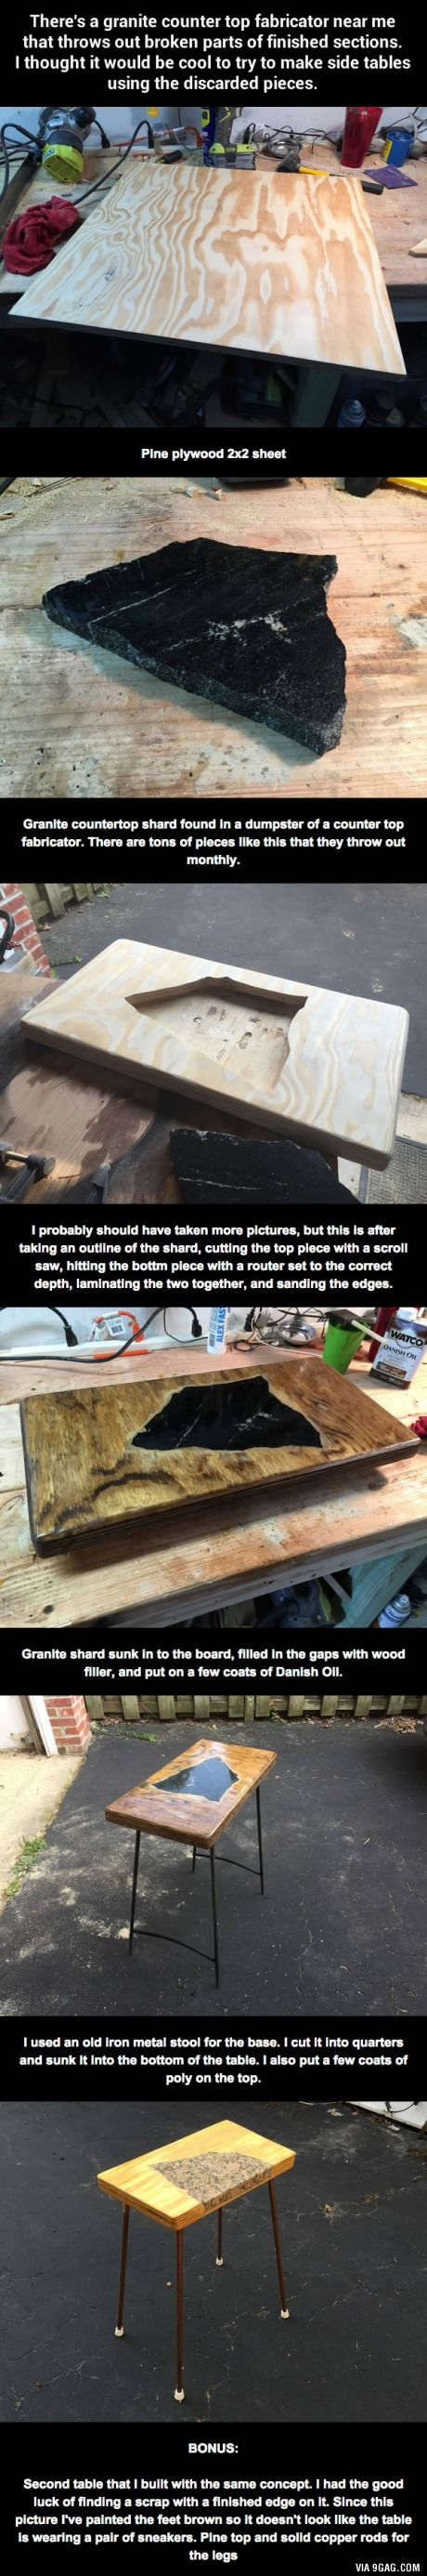 There's a granite counter top fabricator near this guy that throws out broken parts of finished sections, so he…9GAG